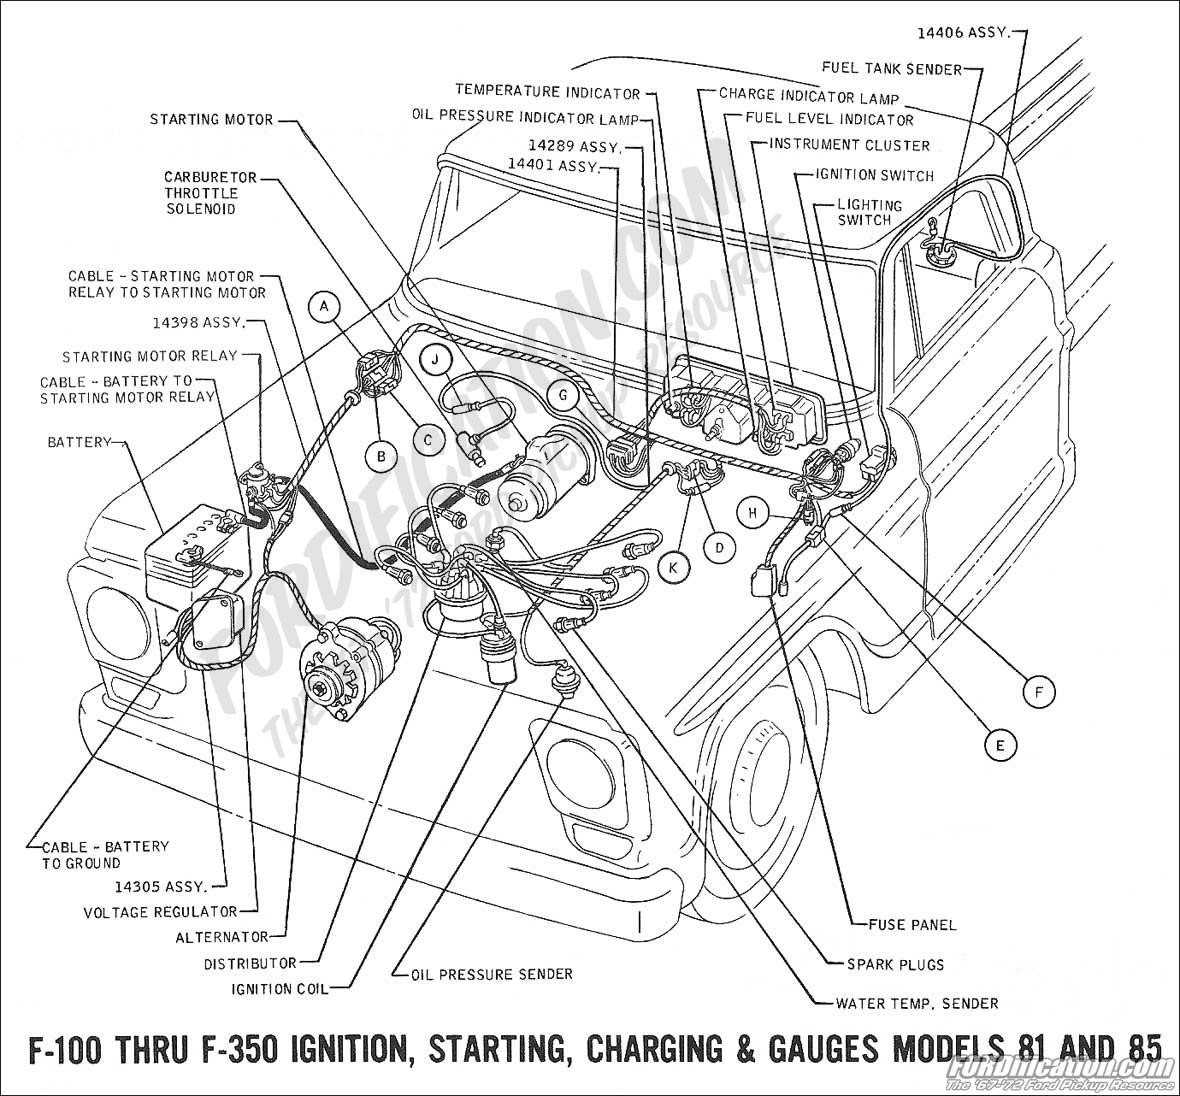 wiring 1969charging 69 f100 wiring diagram 1973 ford f100 wiring diagram \u2022 wiring 1966 ford truck wiring diagram at eliteediting.co